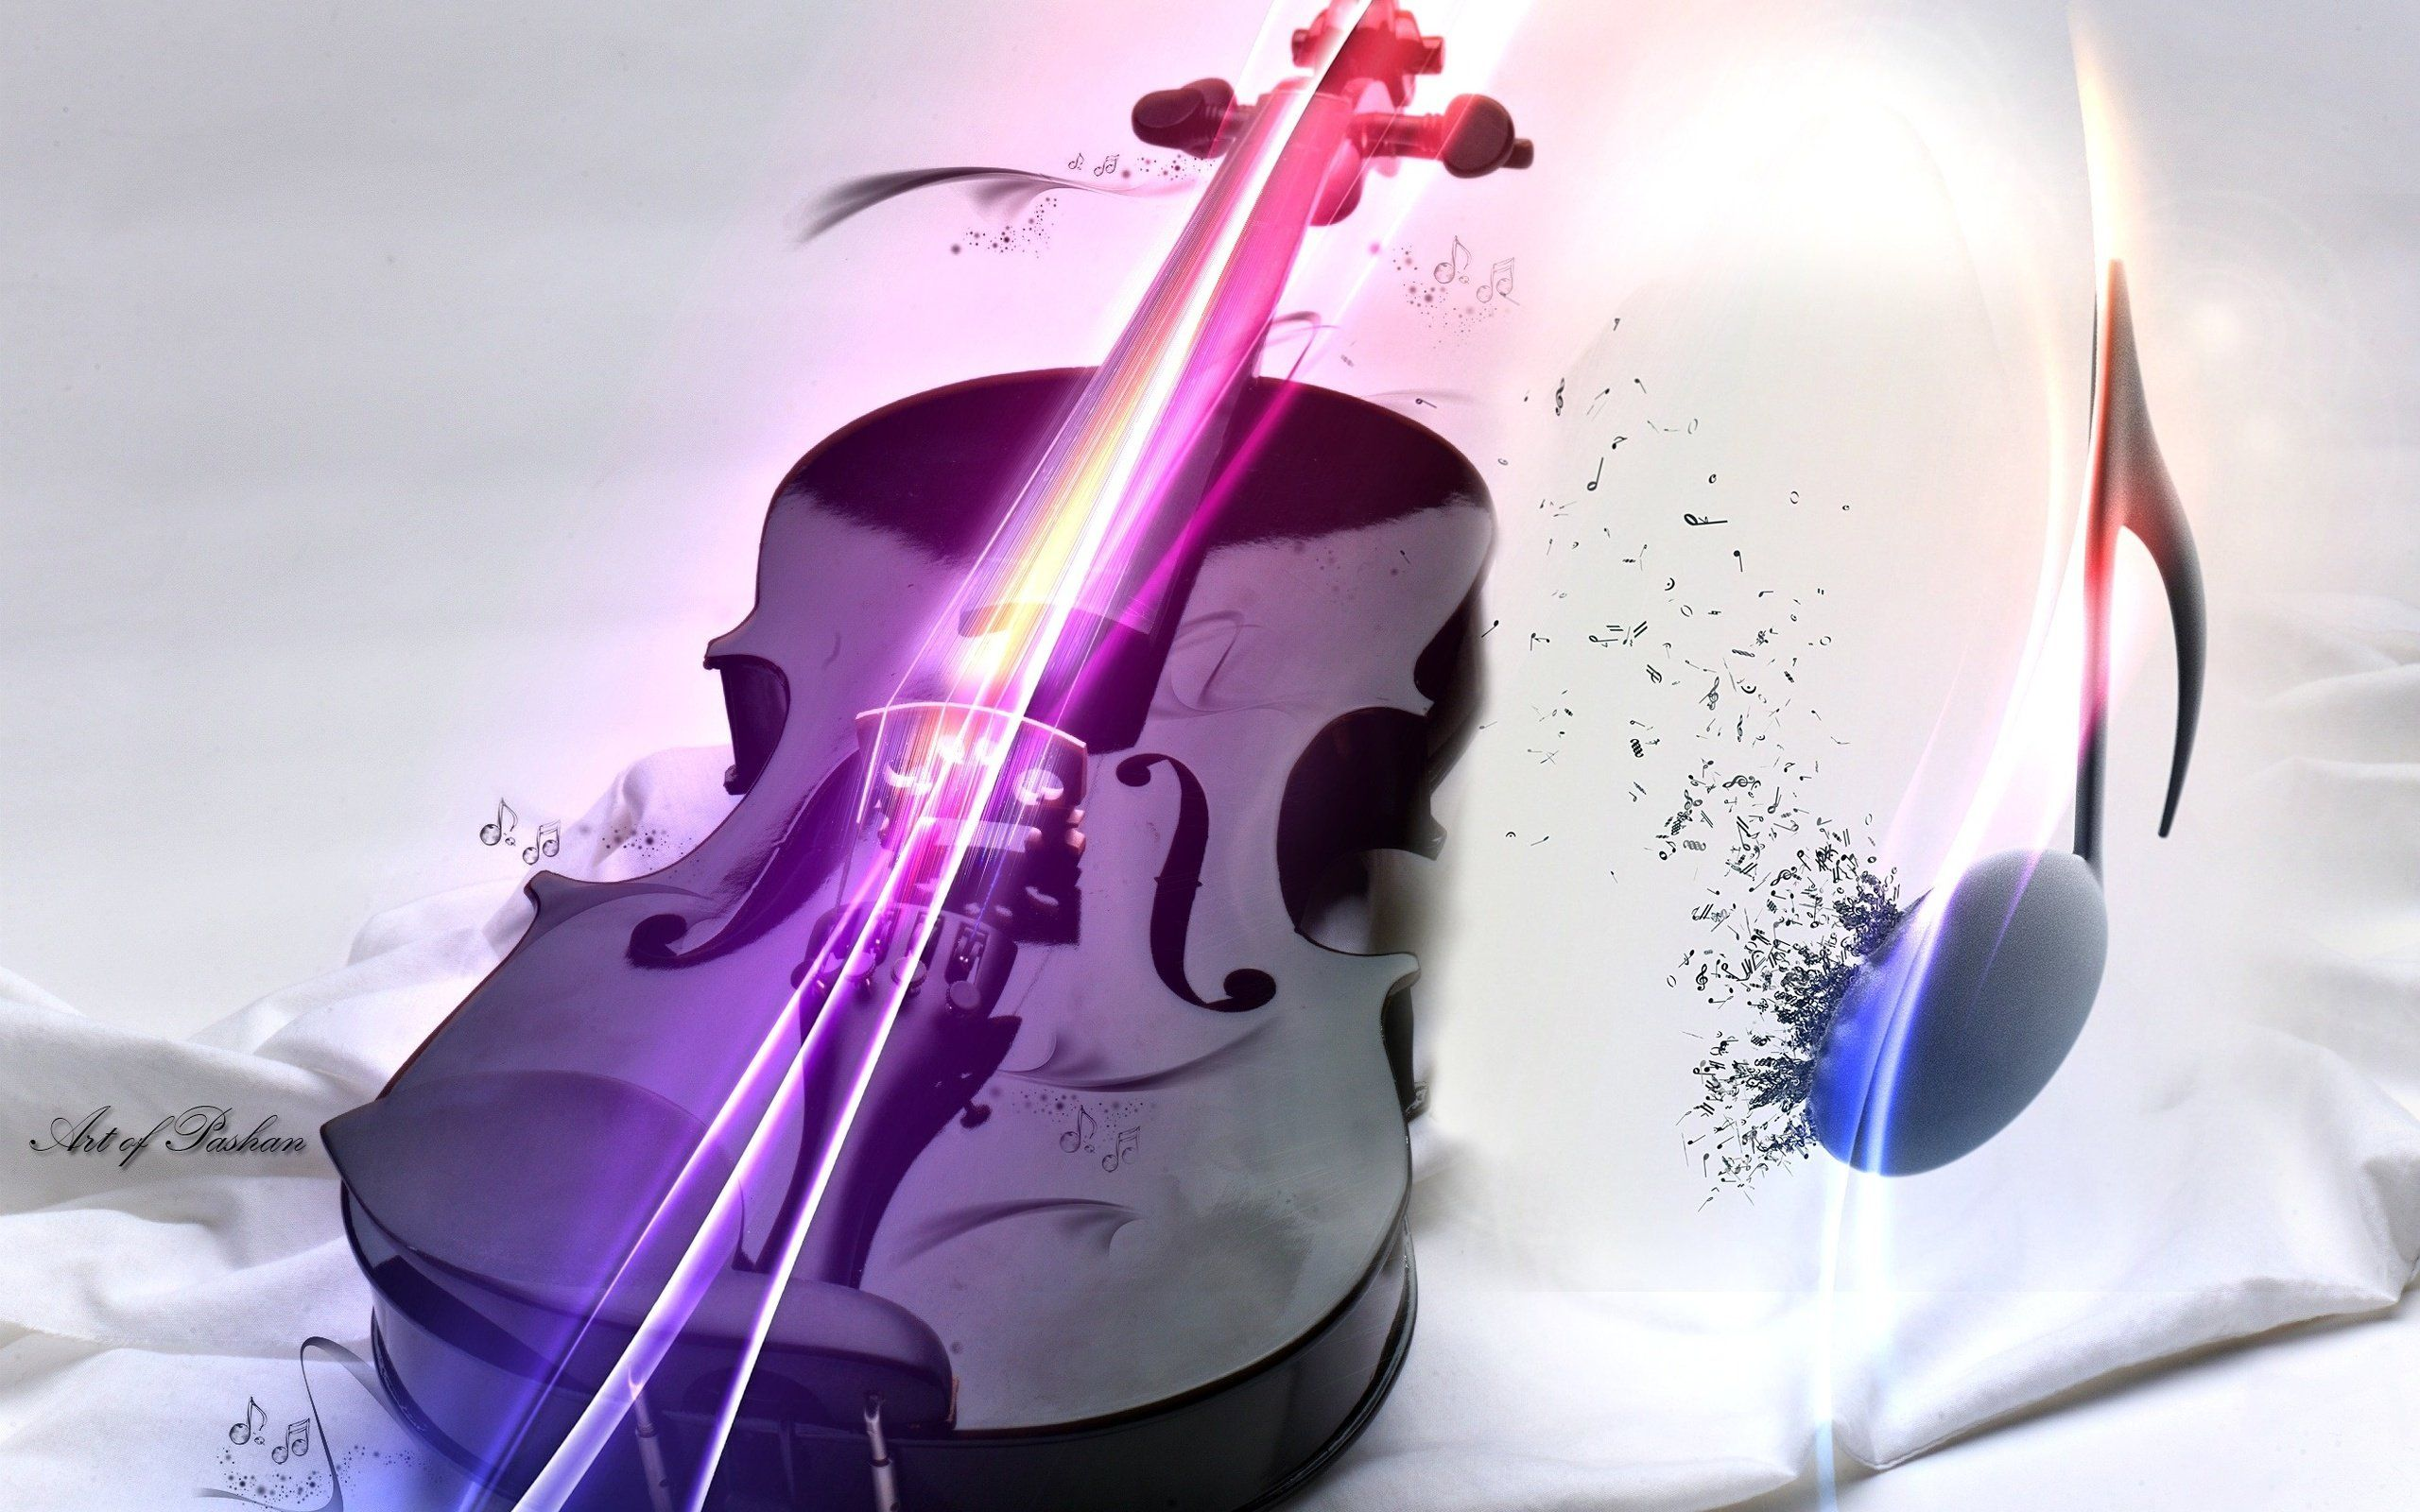 Violin Black And White Wallpapers Picture With High Resolution Wallpaper 2560x1600 Px 463 20 Kb Violin Black Violin High Resolution Wallpapers